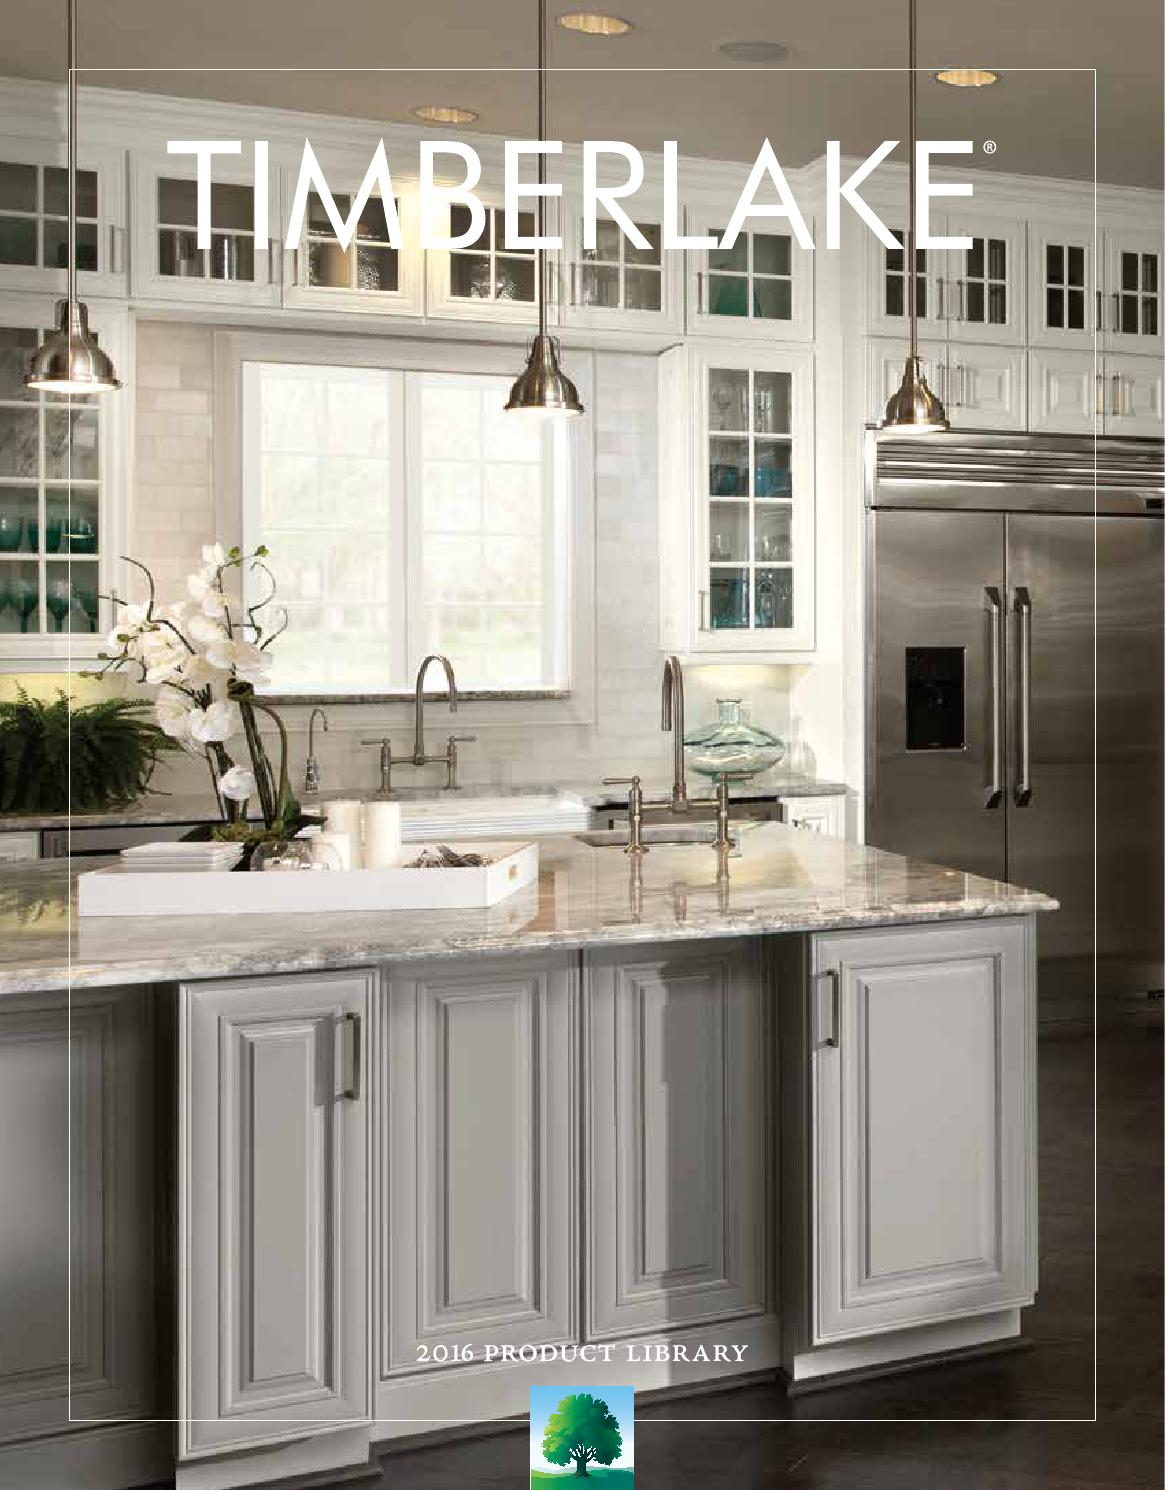 2016 Product Library by Timberlake Cabinetry by Timberlake ...